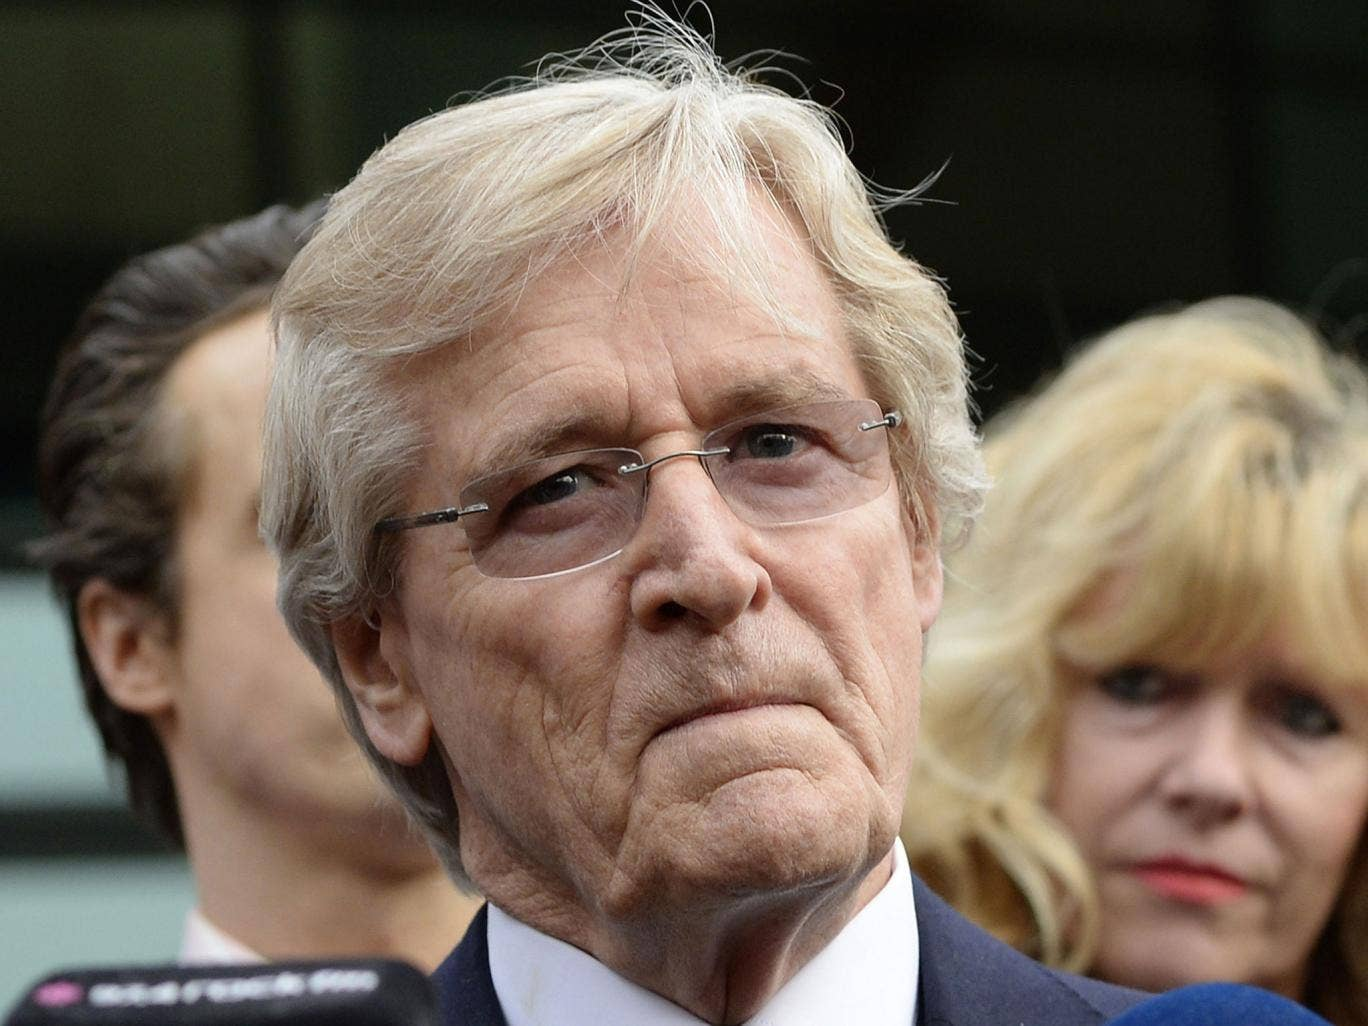 British actor William Roache, who plays the character of Ken Barlow in the soap opera Coronation Street, speaks to media after being cleared of all charges at Preston Crown Court in Preston